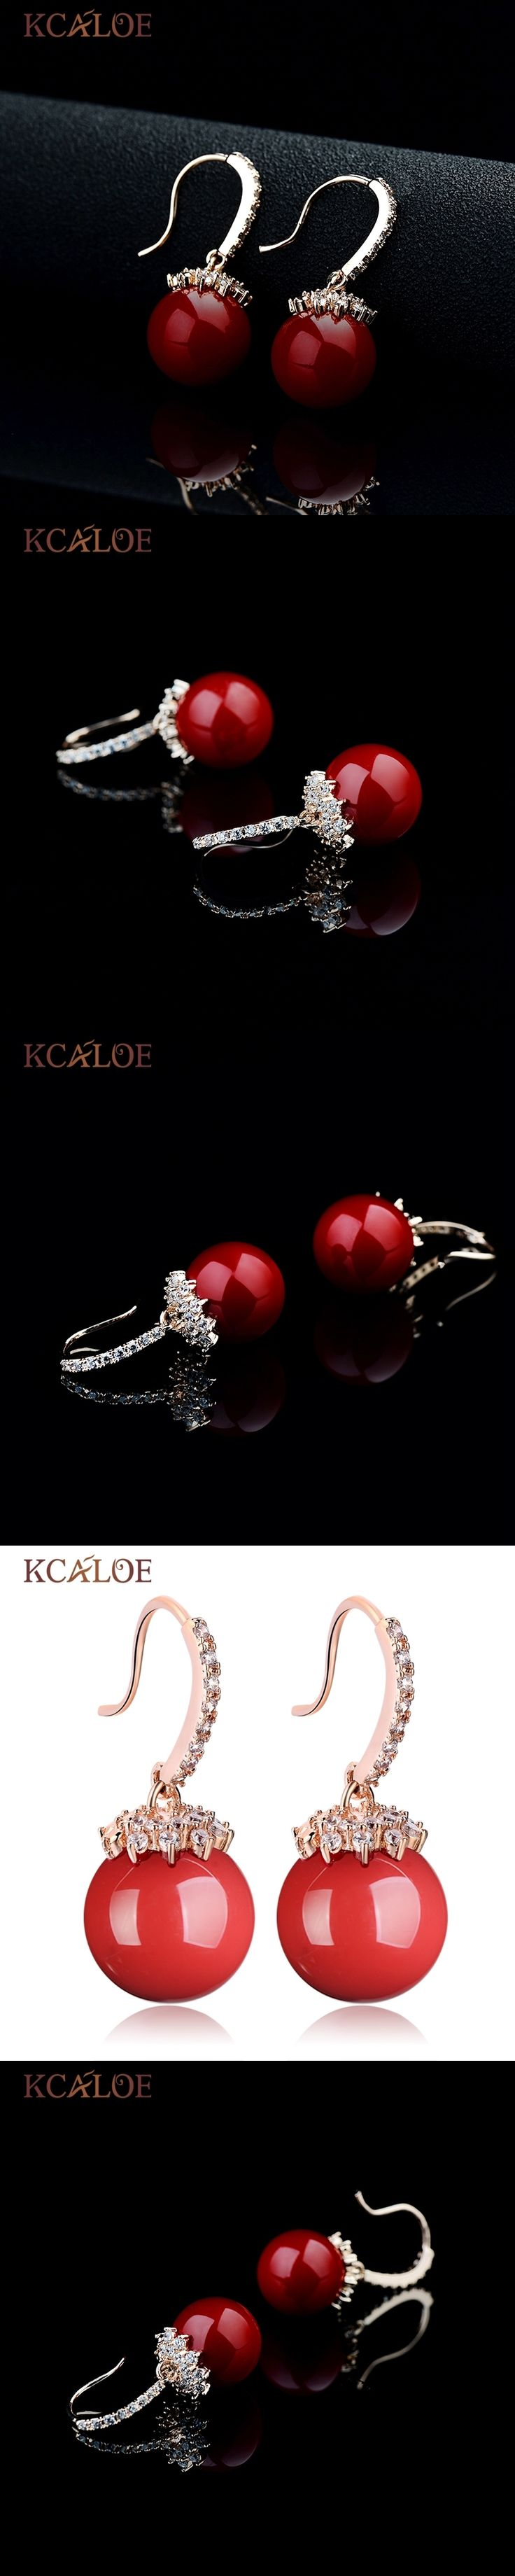 KCALOE Red Dangle Earrings Large Ball Artificial Coral Wedding Rose Gold Color Cubic Zircon Crystal Earring Women Jewelry